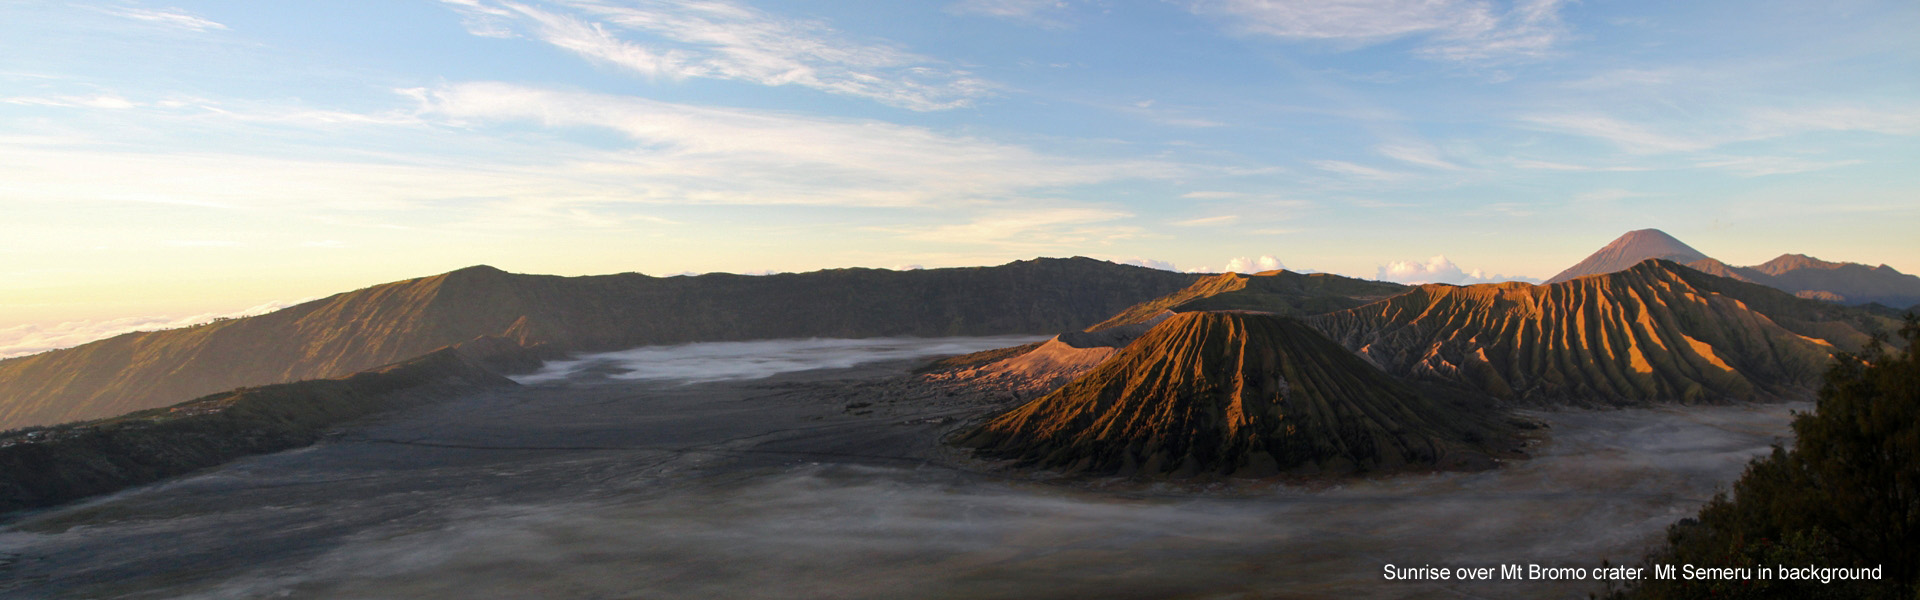 Sunrise over Mt Bromo crater, Mt Semeru in background